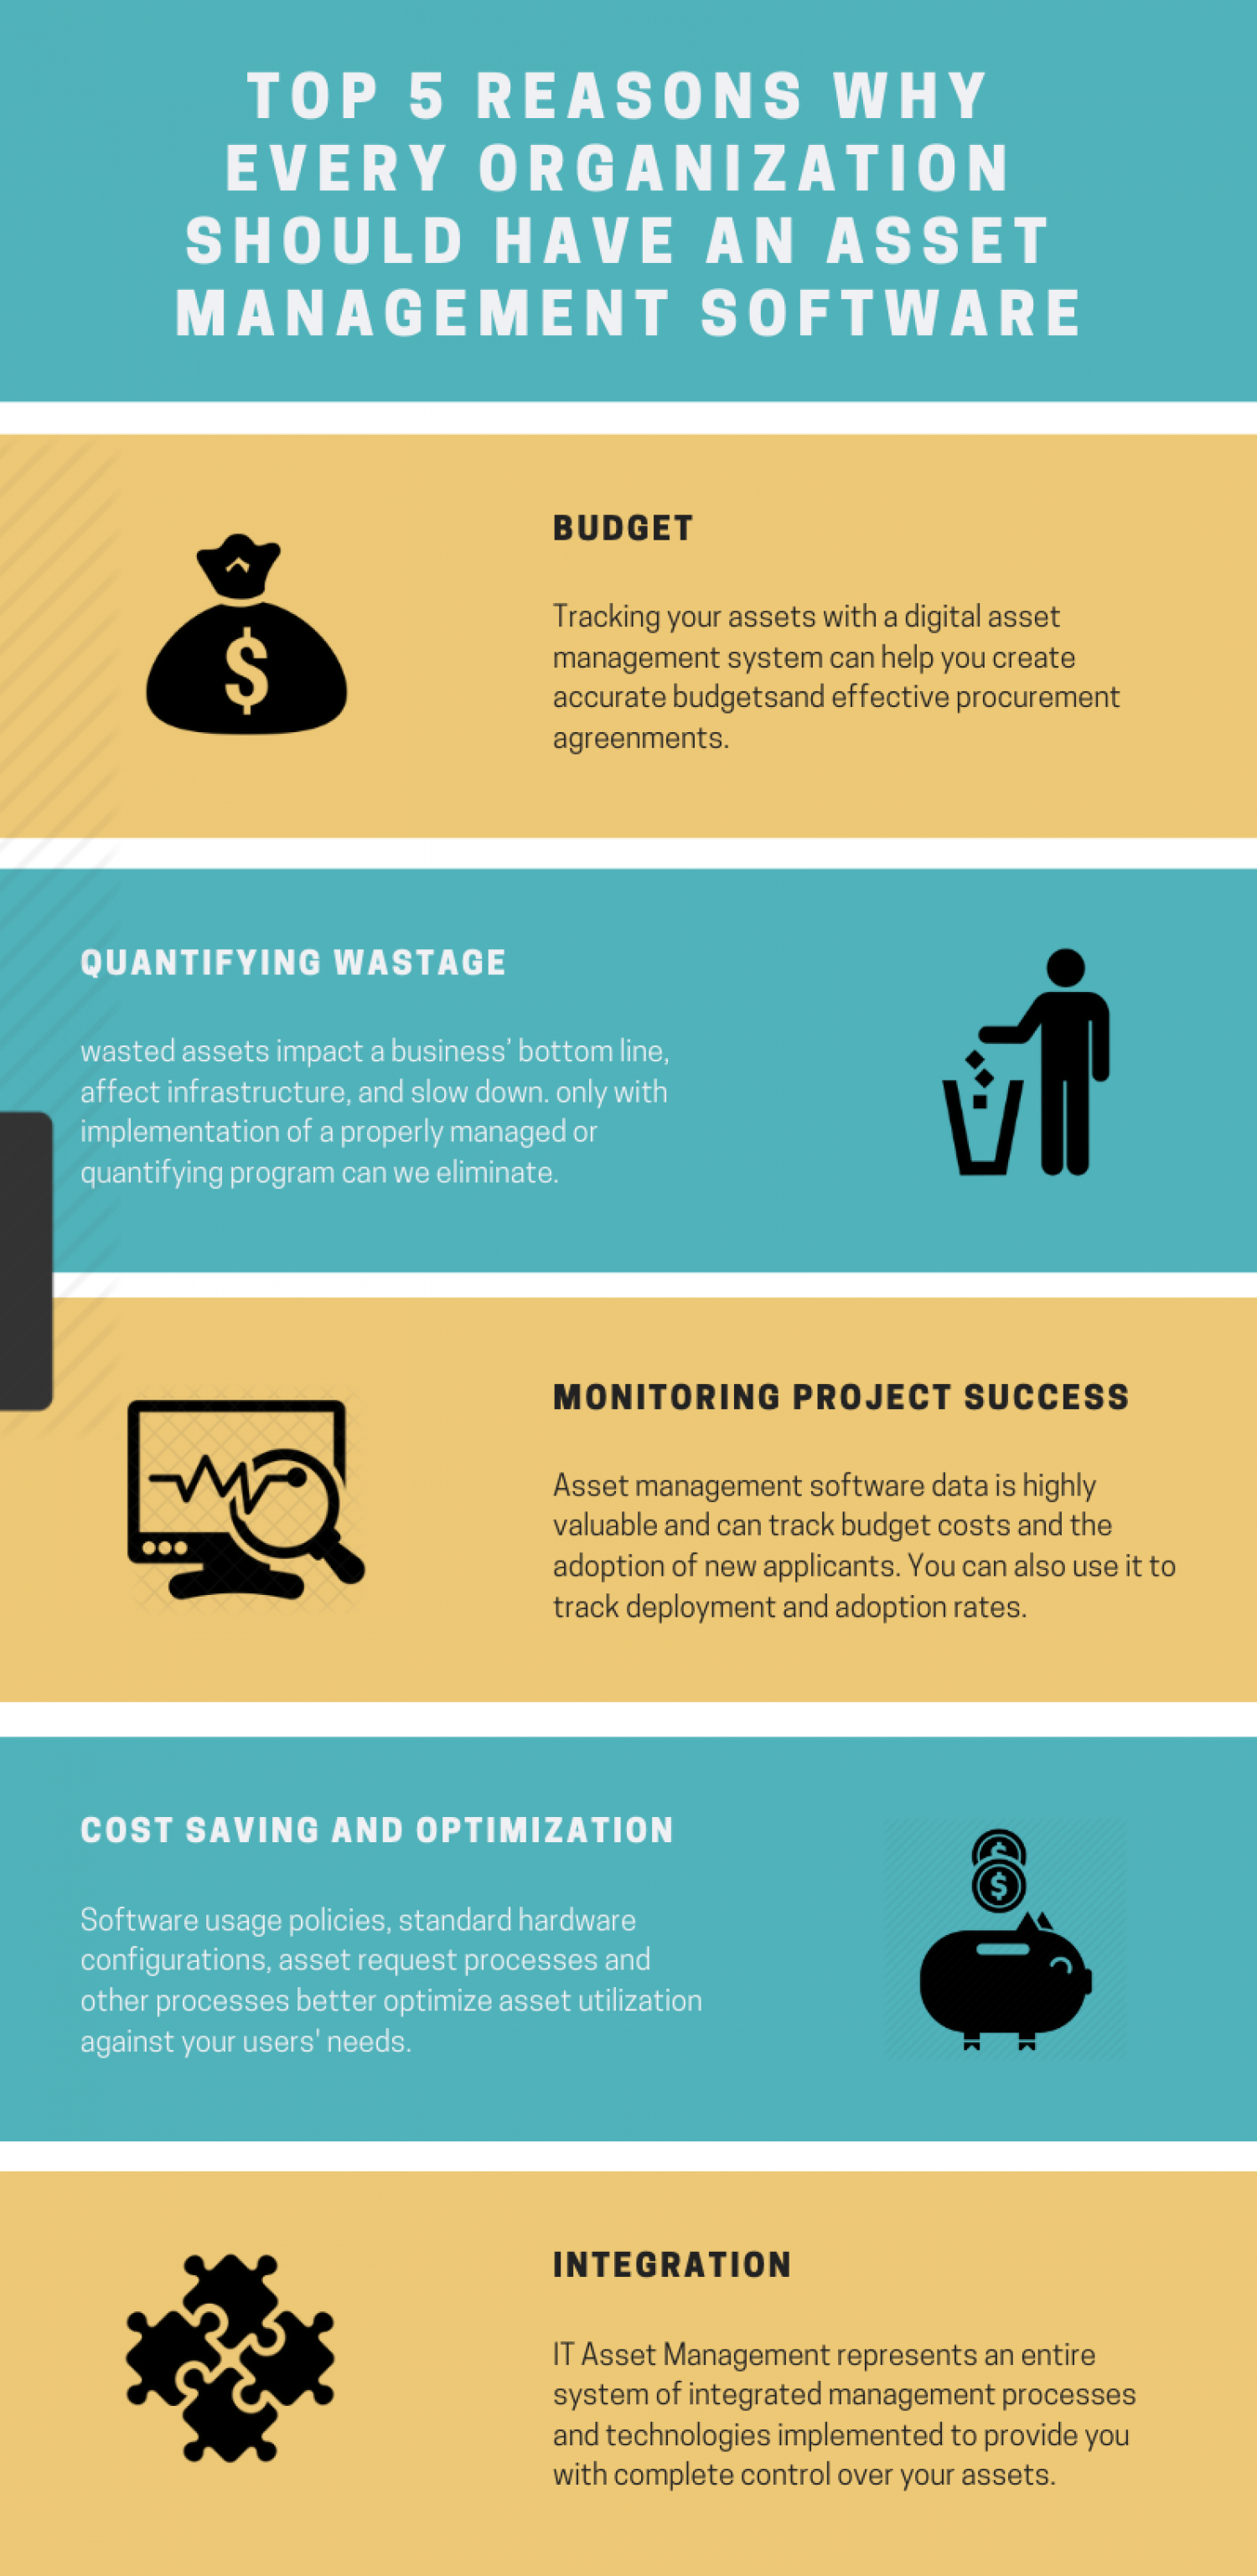 Top 5 reasons why every organization should have an asset management software Infographic